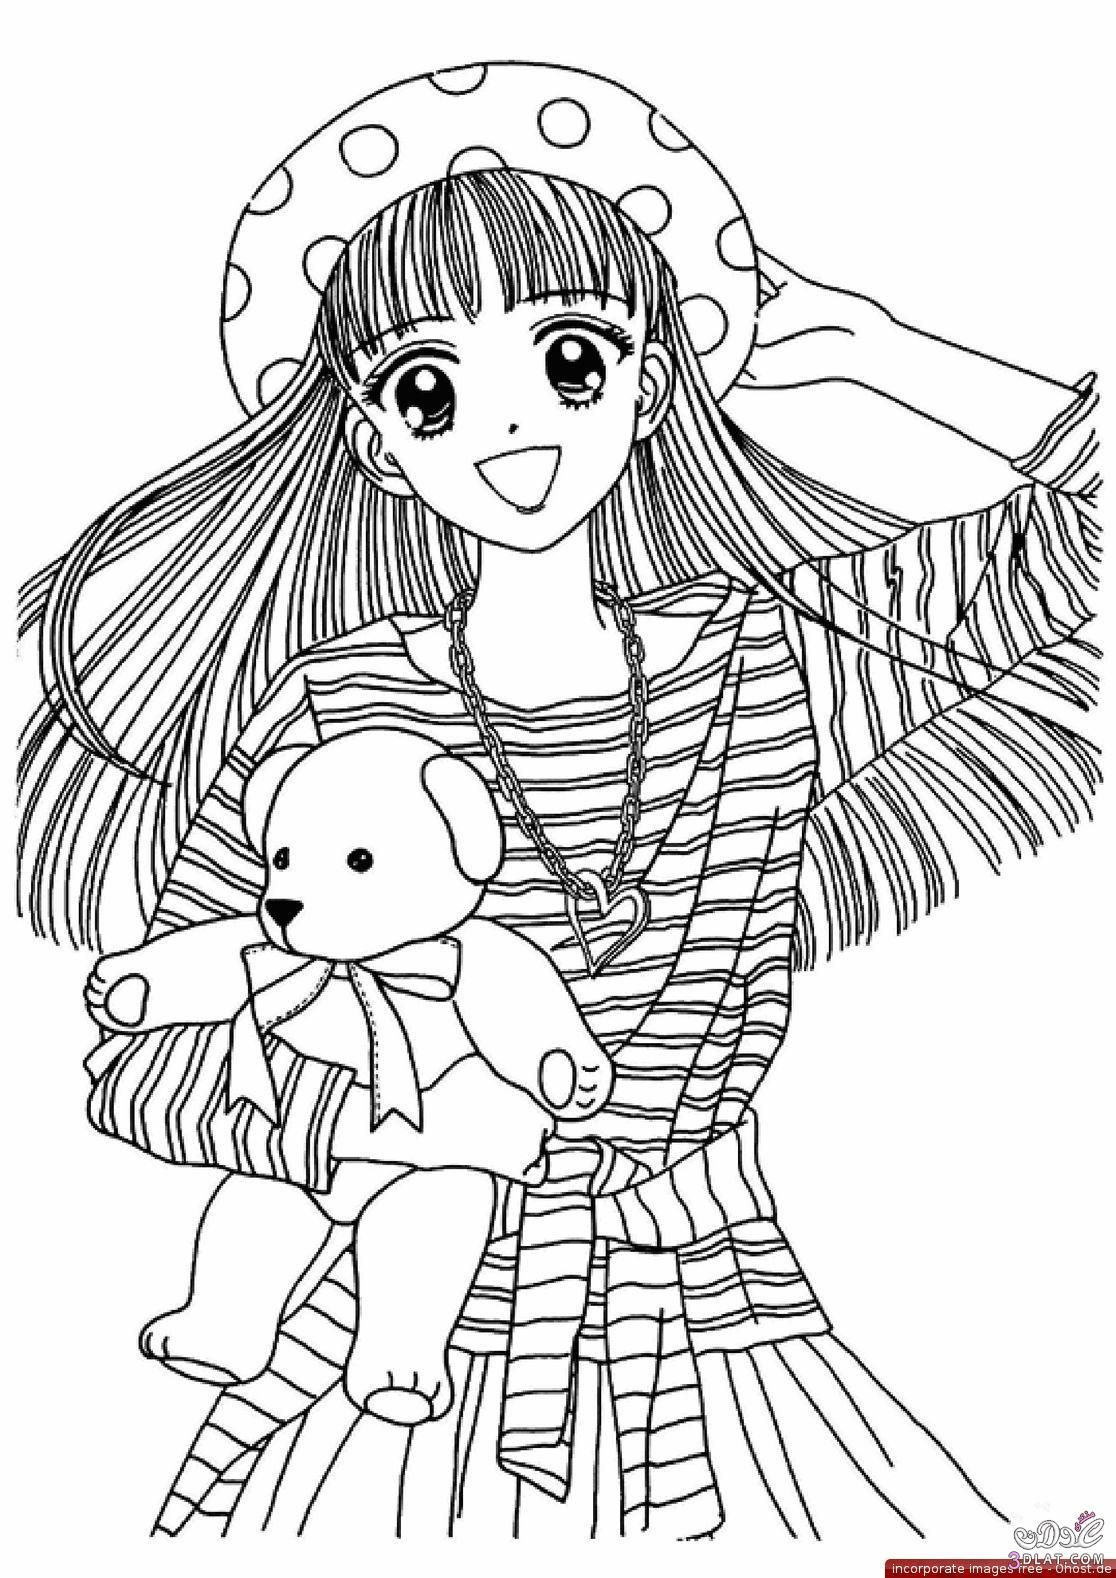 Japanese anime girl coloring pages